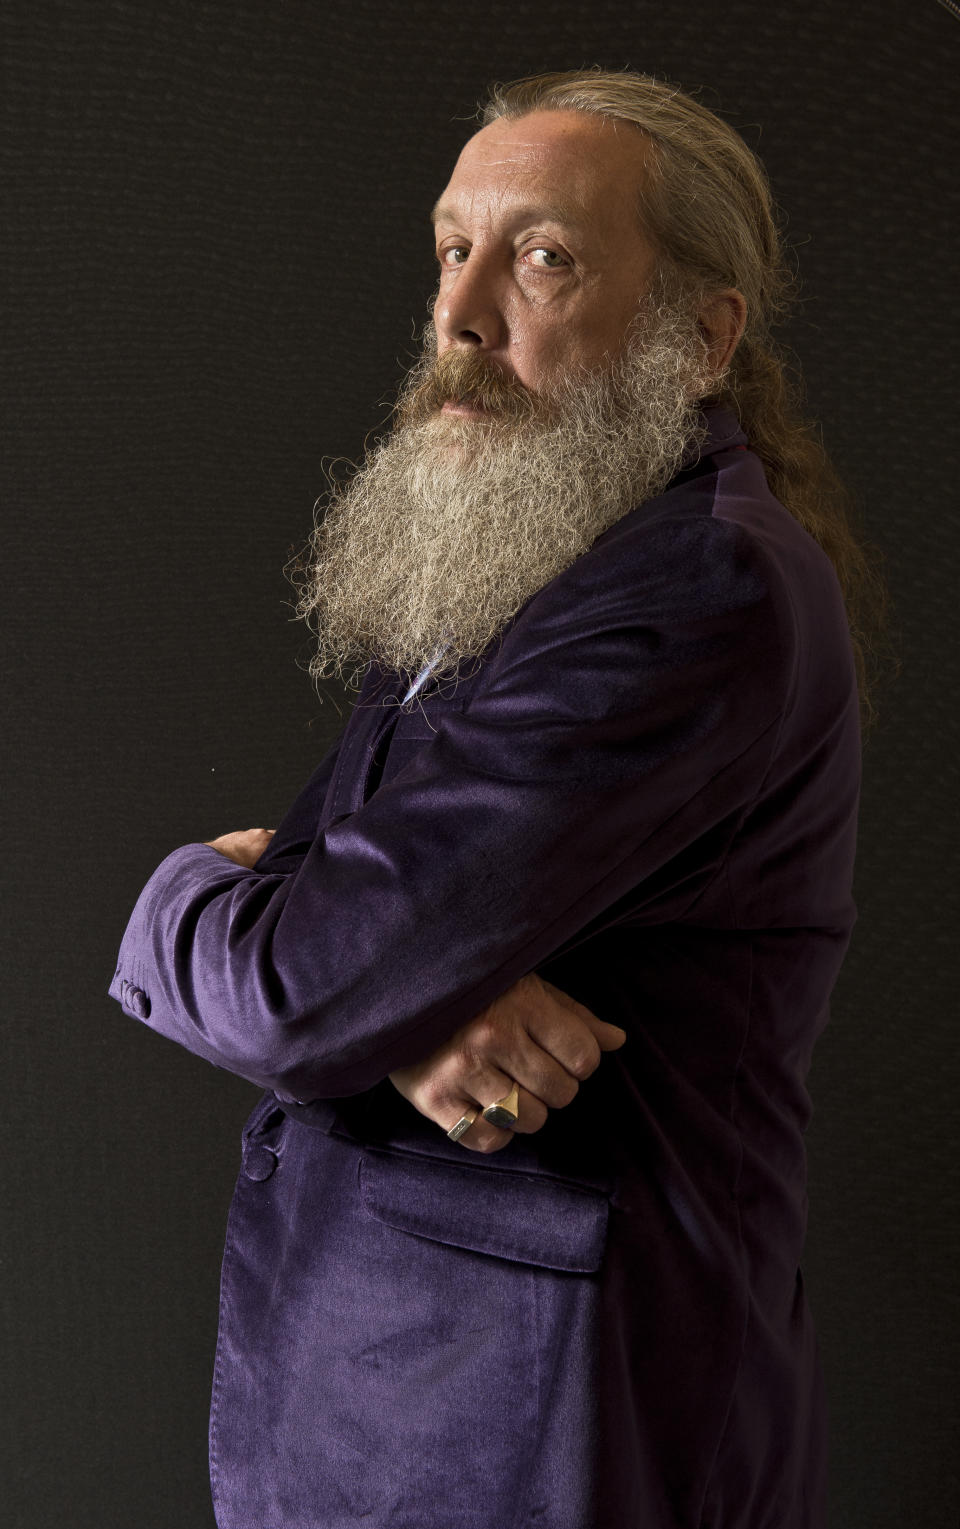 LONDON, UNITED KINGDOM - SEPTEMBER 6: Portrait of English comic book writer Alan Moore, taken on September 6, 2013. Moore is often considered the finest writer in the comics medium, and is best known for his graphic novels Watchmen and V For Vendetta. (Photo by Kevin Nixon/SFX Magazine via Getty Images)